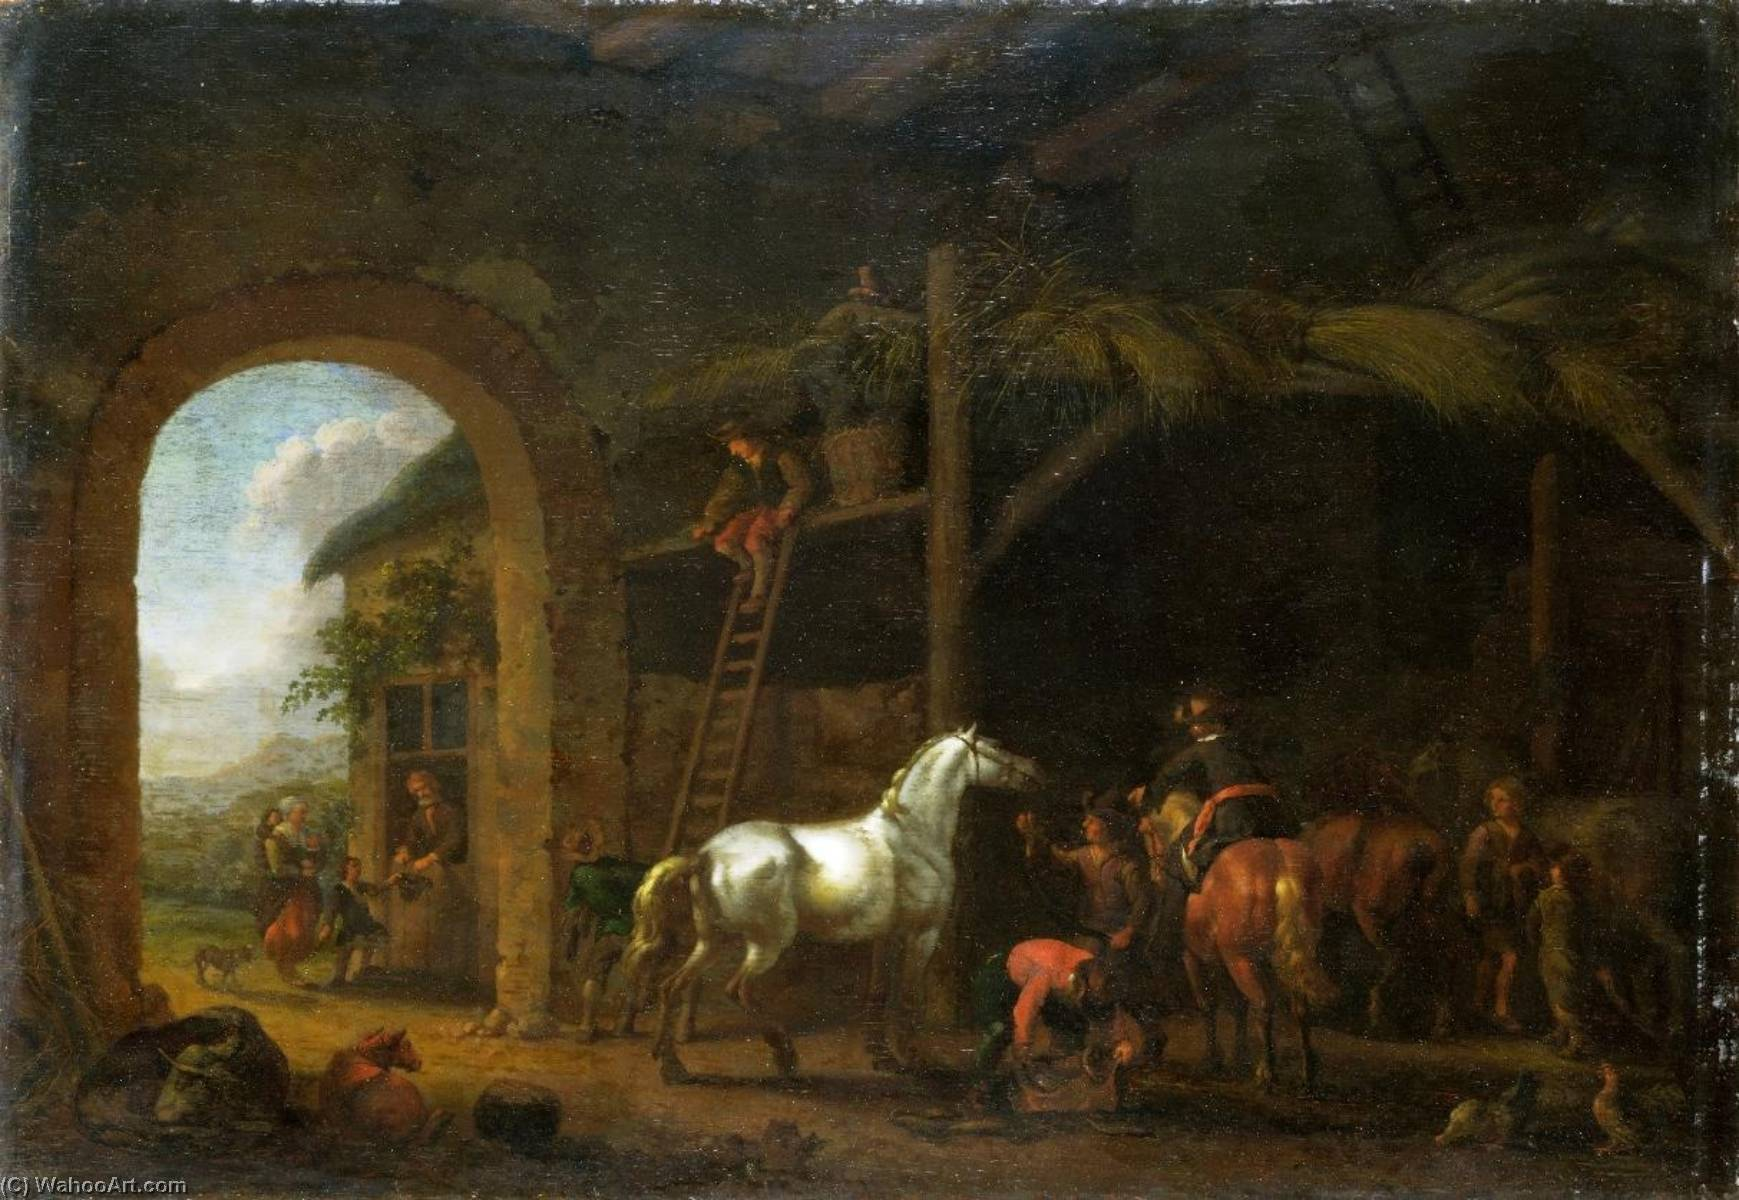 The Interior of a Stable, 1690 by Abraham Pietersz Van Calraet (1642-1722) | Museum Quality Reproductions | ArtsDot.com